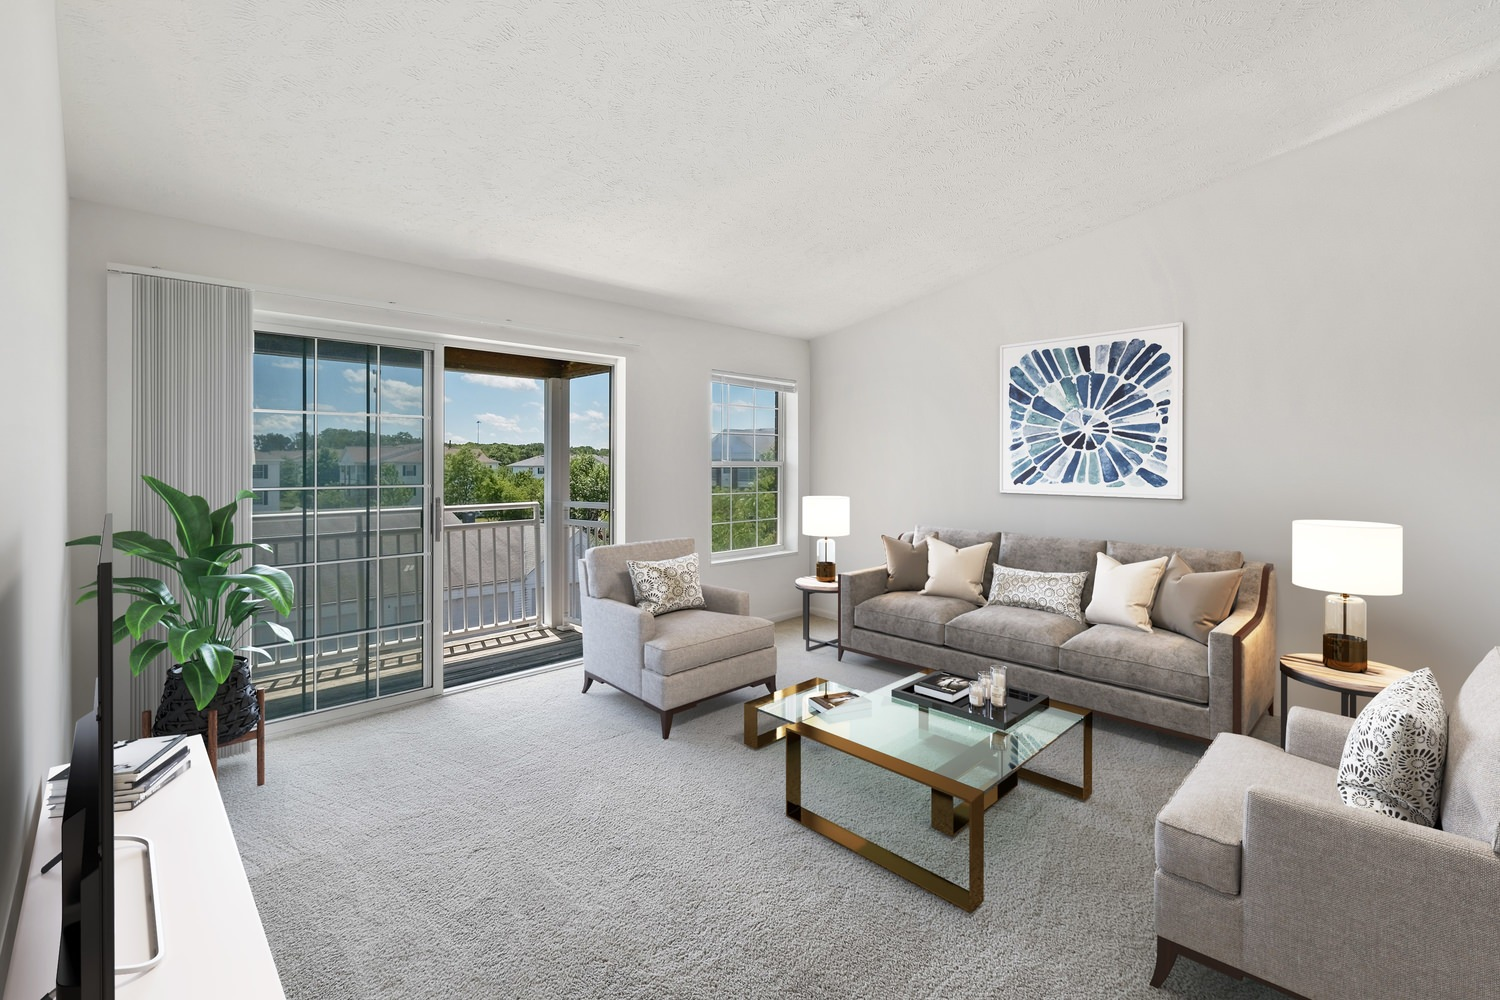 Indoor living room of a apartment building  with a couch and a table and well decorated areas with nice floor carpet